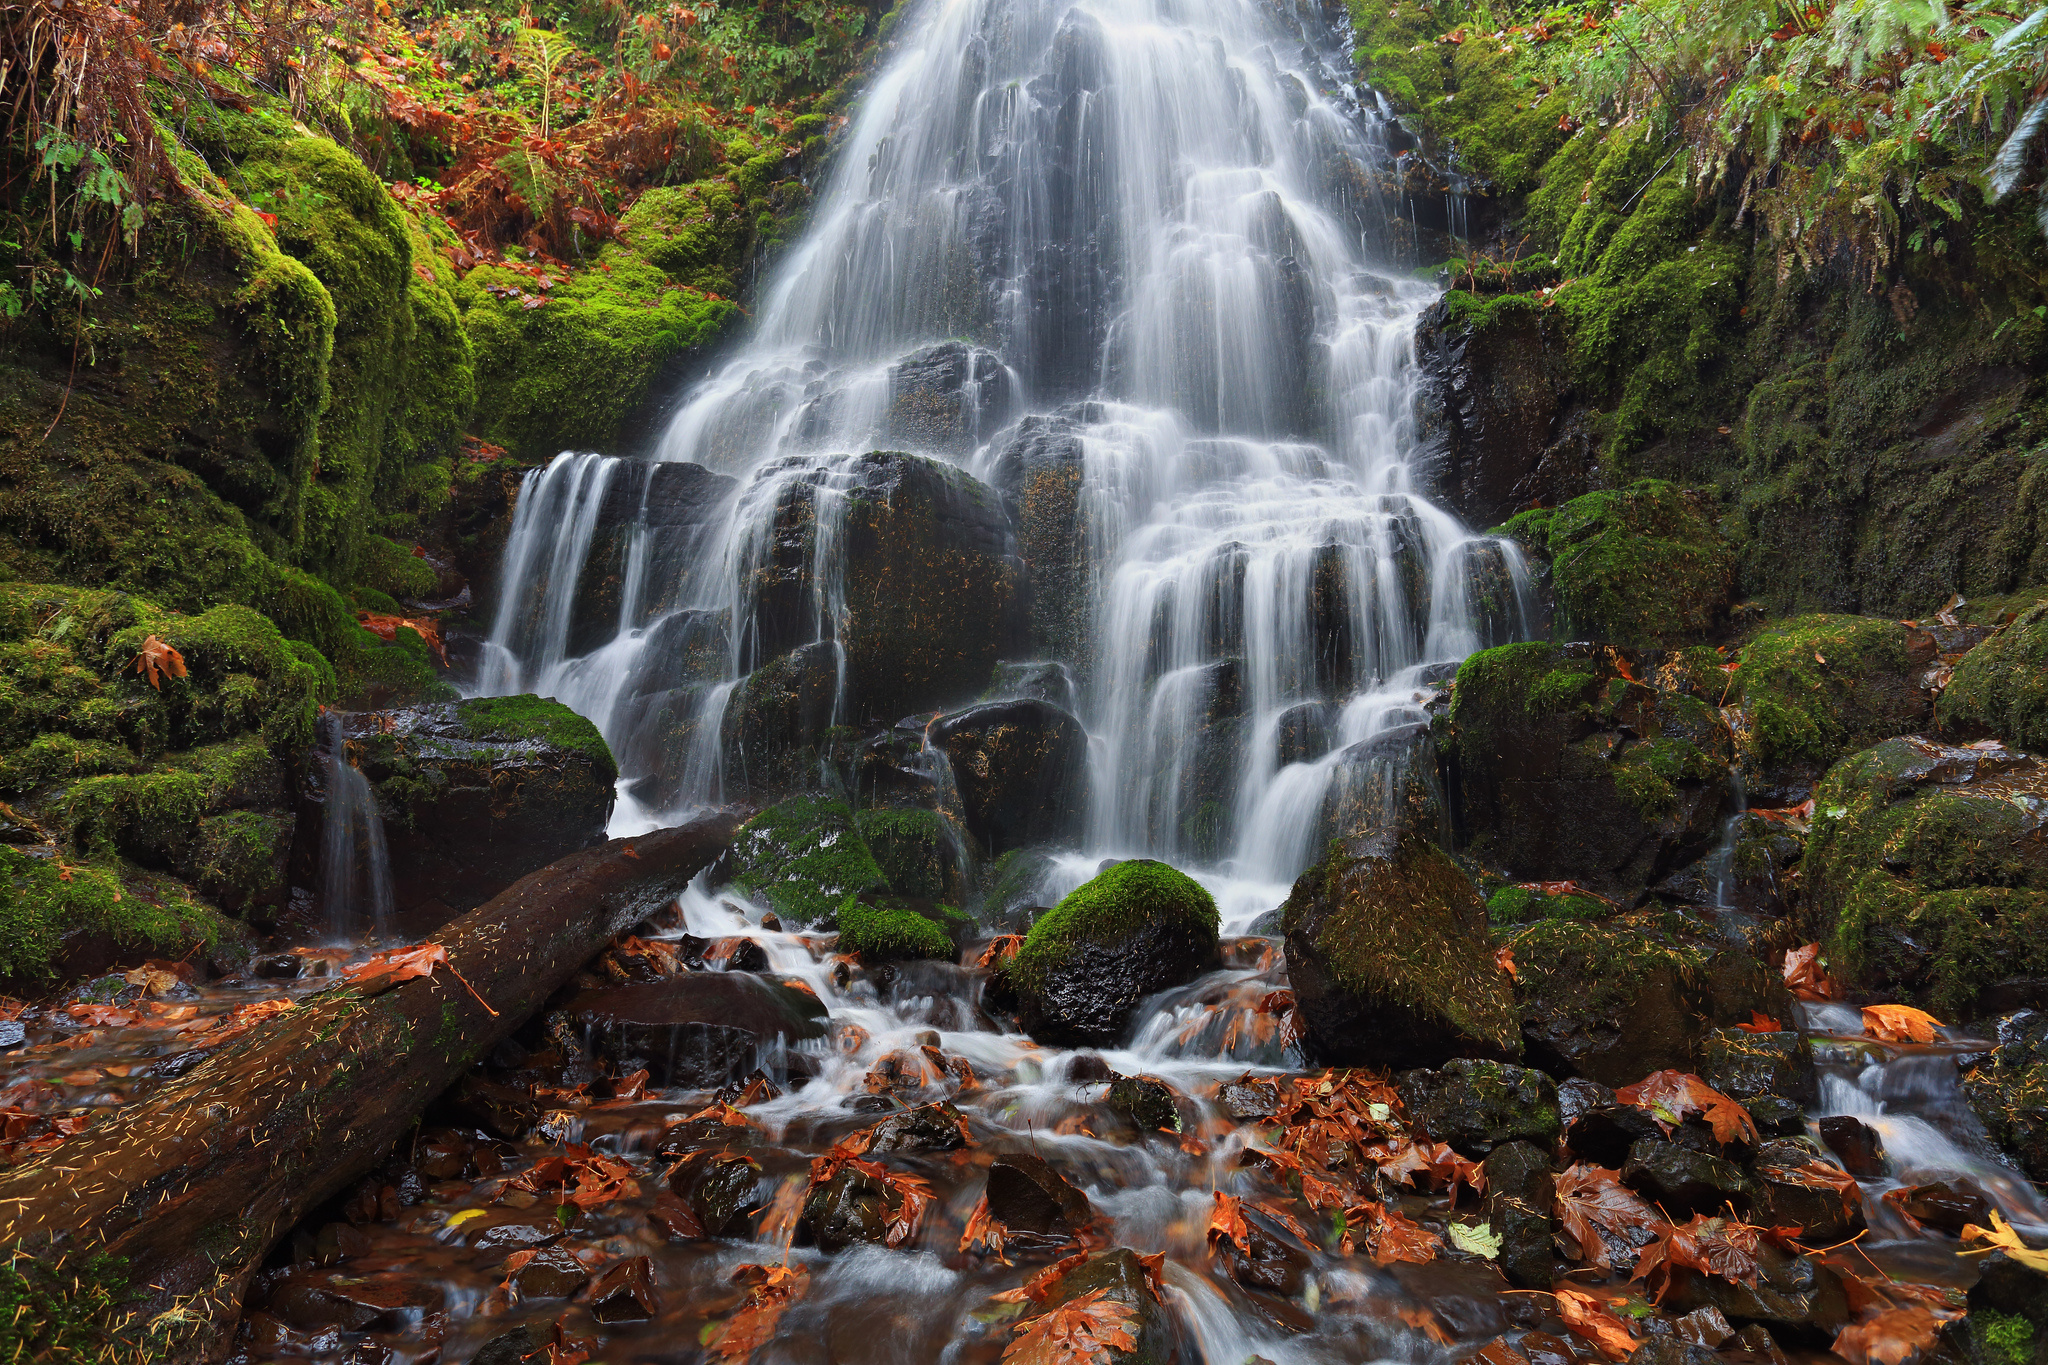 Falling Leaves Hd Live Wallpaper Columbia River Oregon Waterfall Cascade Rocks Moss Leaves